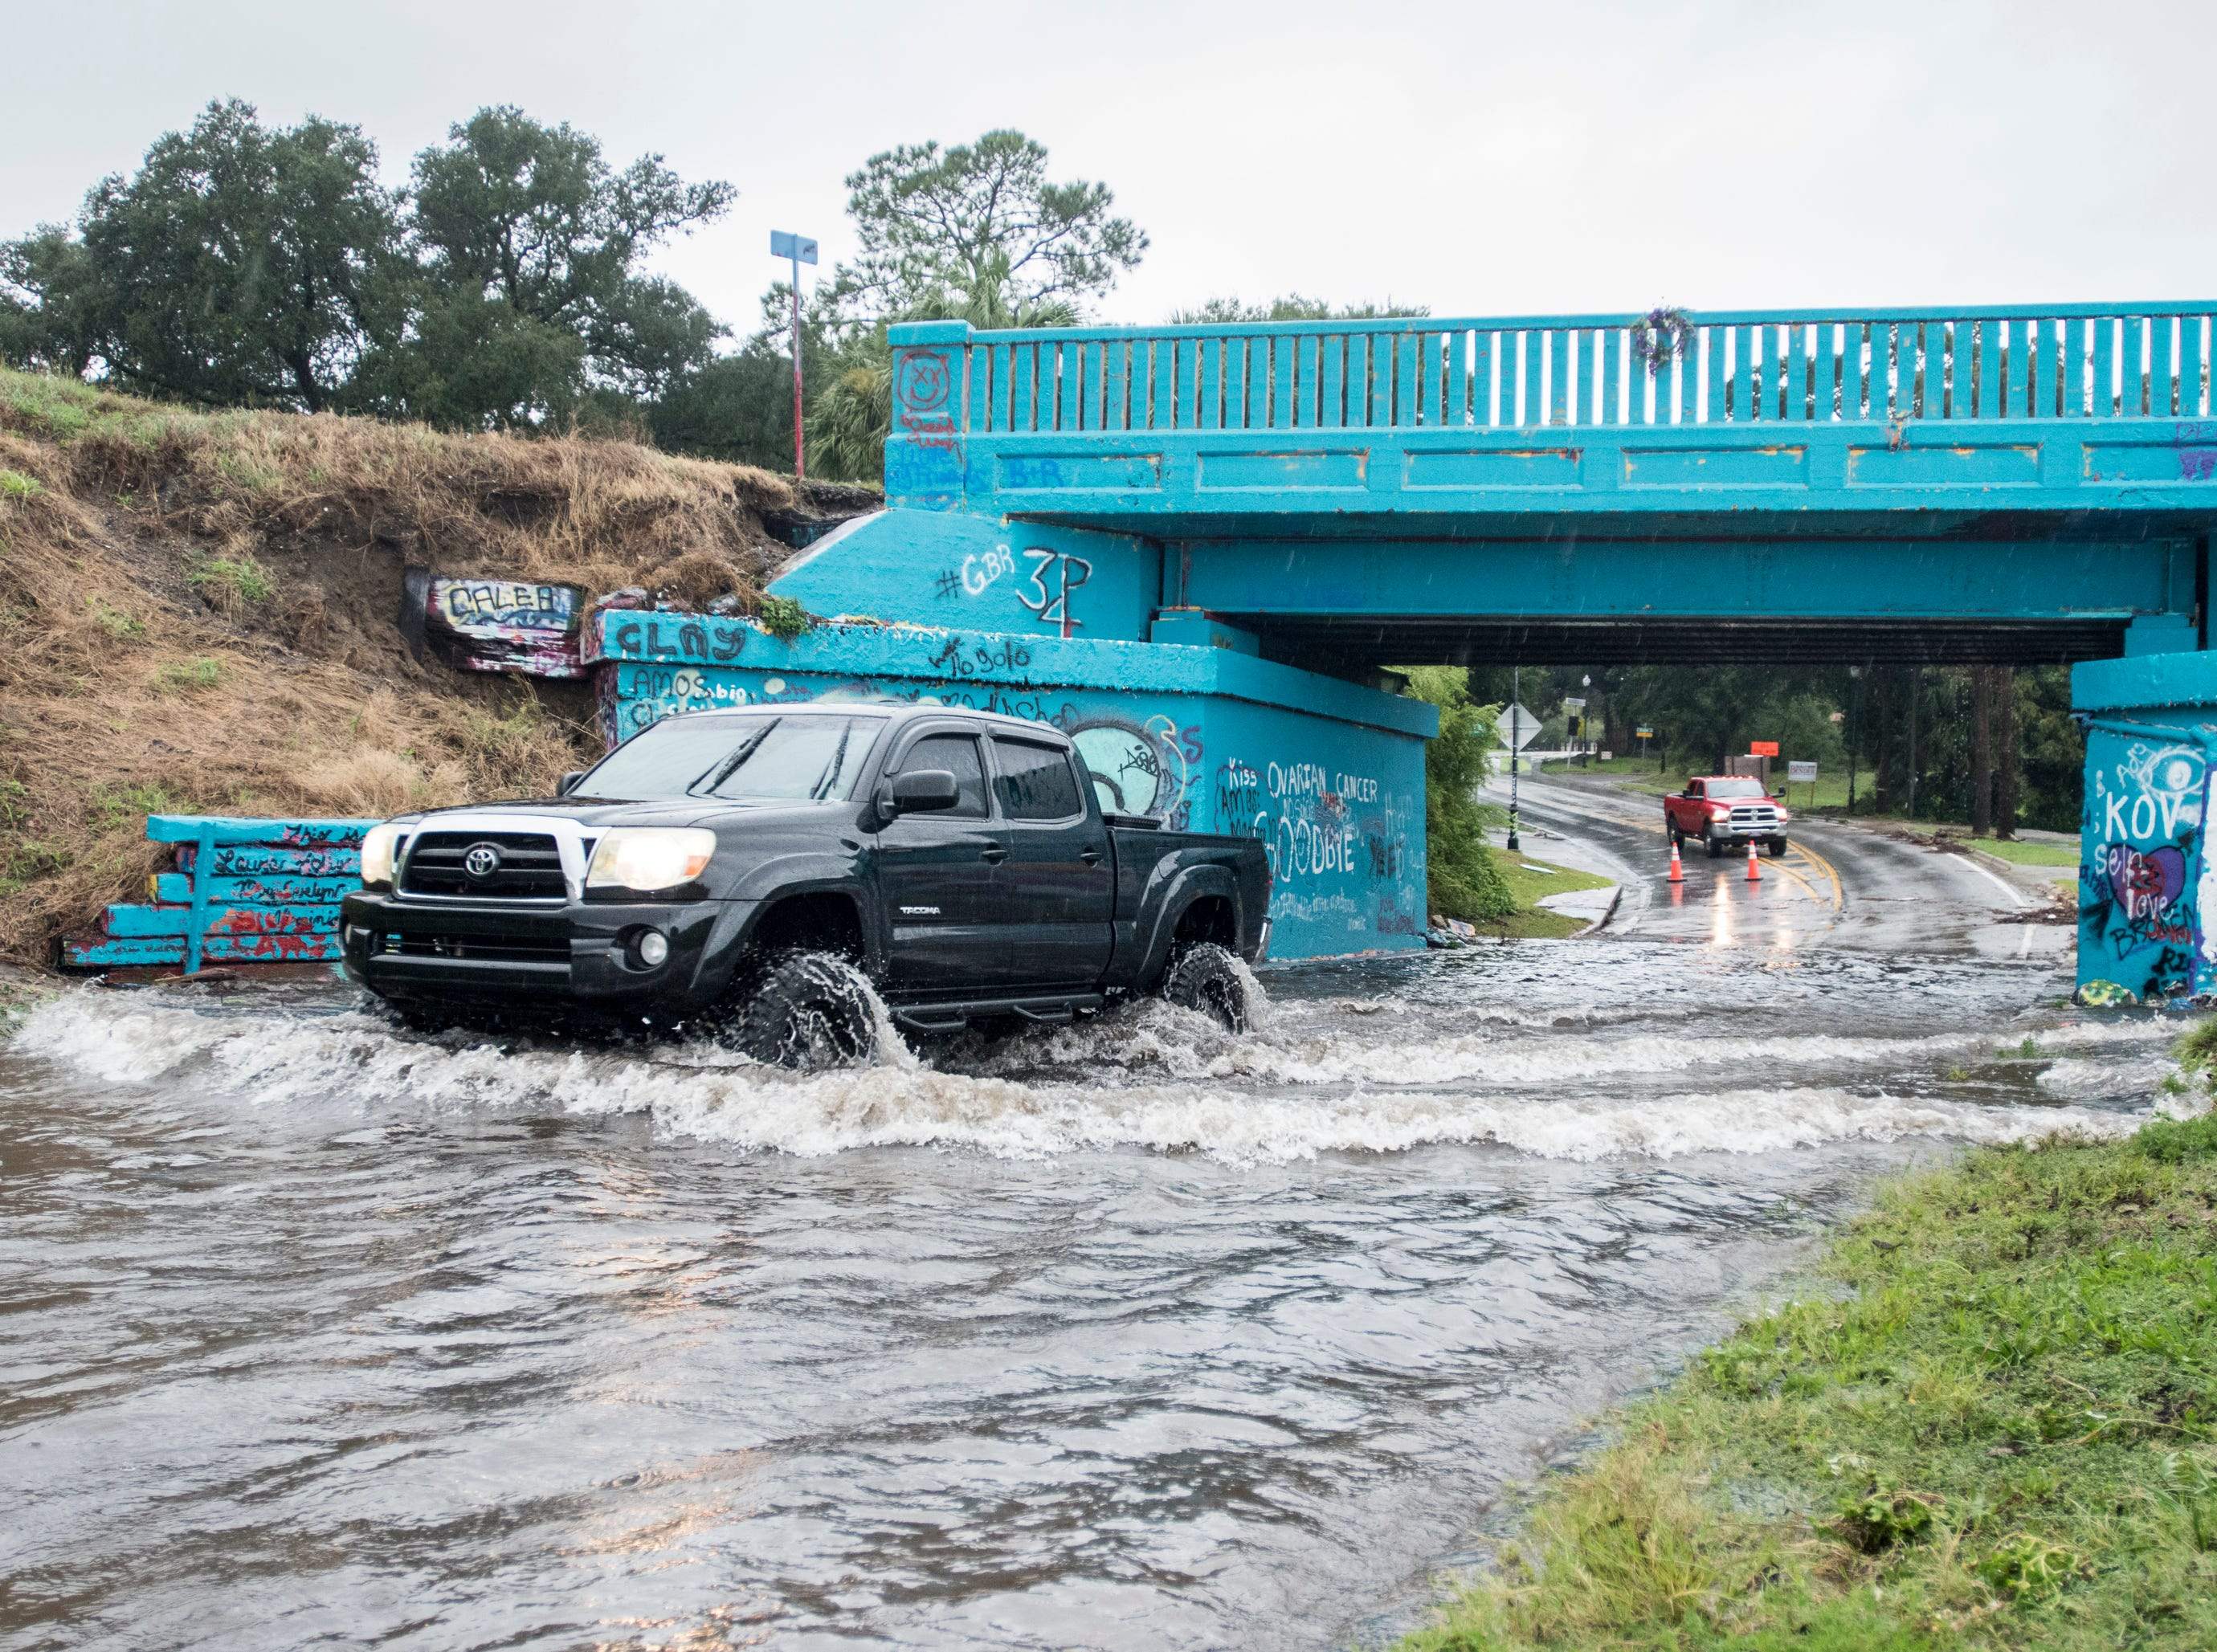 A vehicle with a high suspension makes its way through the flood water under Graffiti Bridge as Tropical Storm Gordon leaves Pensacola on Wednesday, September 5, 2018.